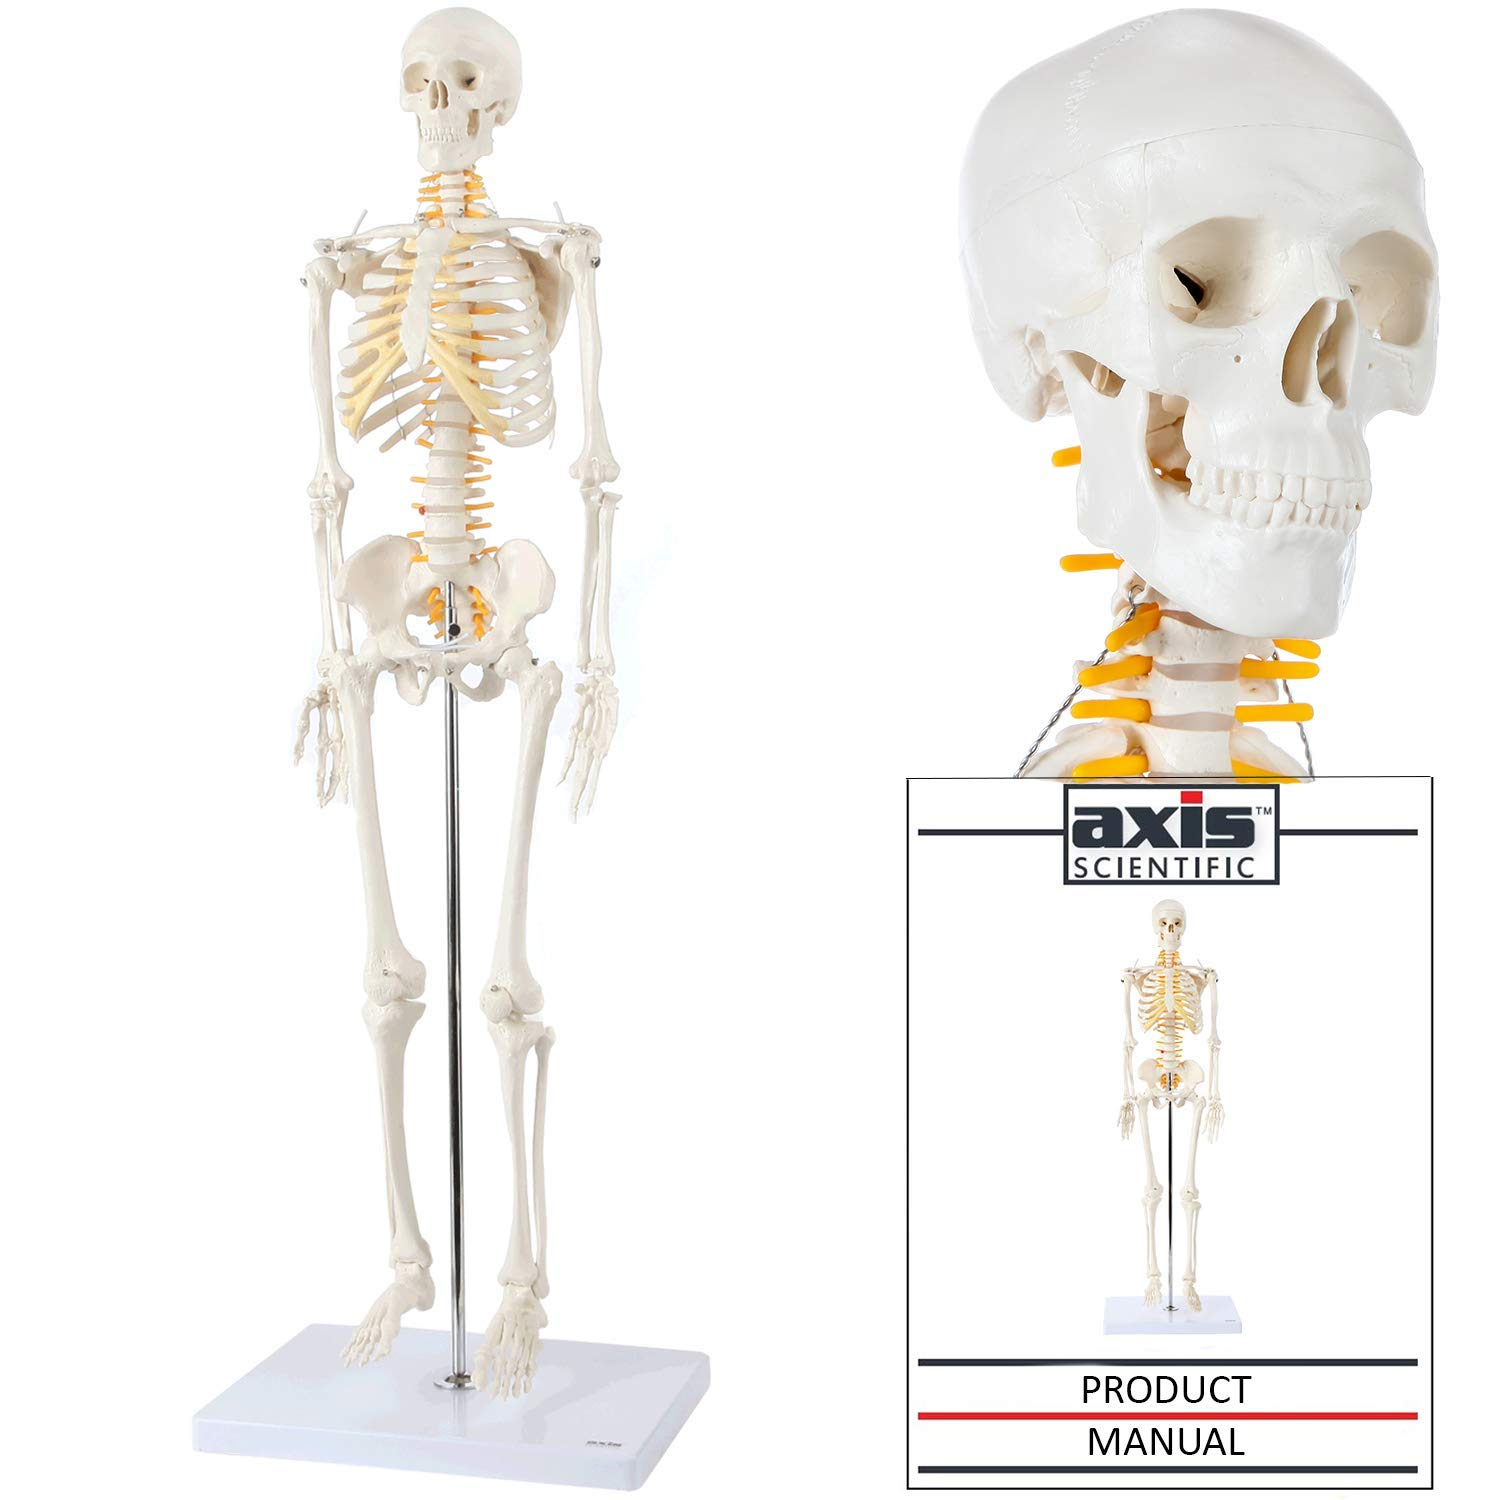 """Axis Scientific Mini Human Skeleton Model with Metal Stand, 31"""" Tall with Removable Arms and Legs, Easy to Assemble, Includes Detailed Product Manual for Study and Reference, Worry Free 3 Year Warranty"""